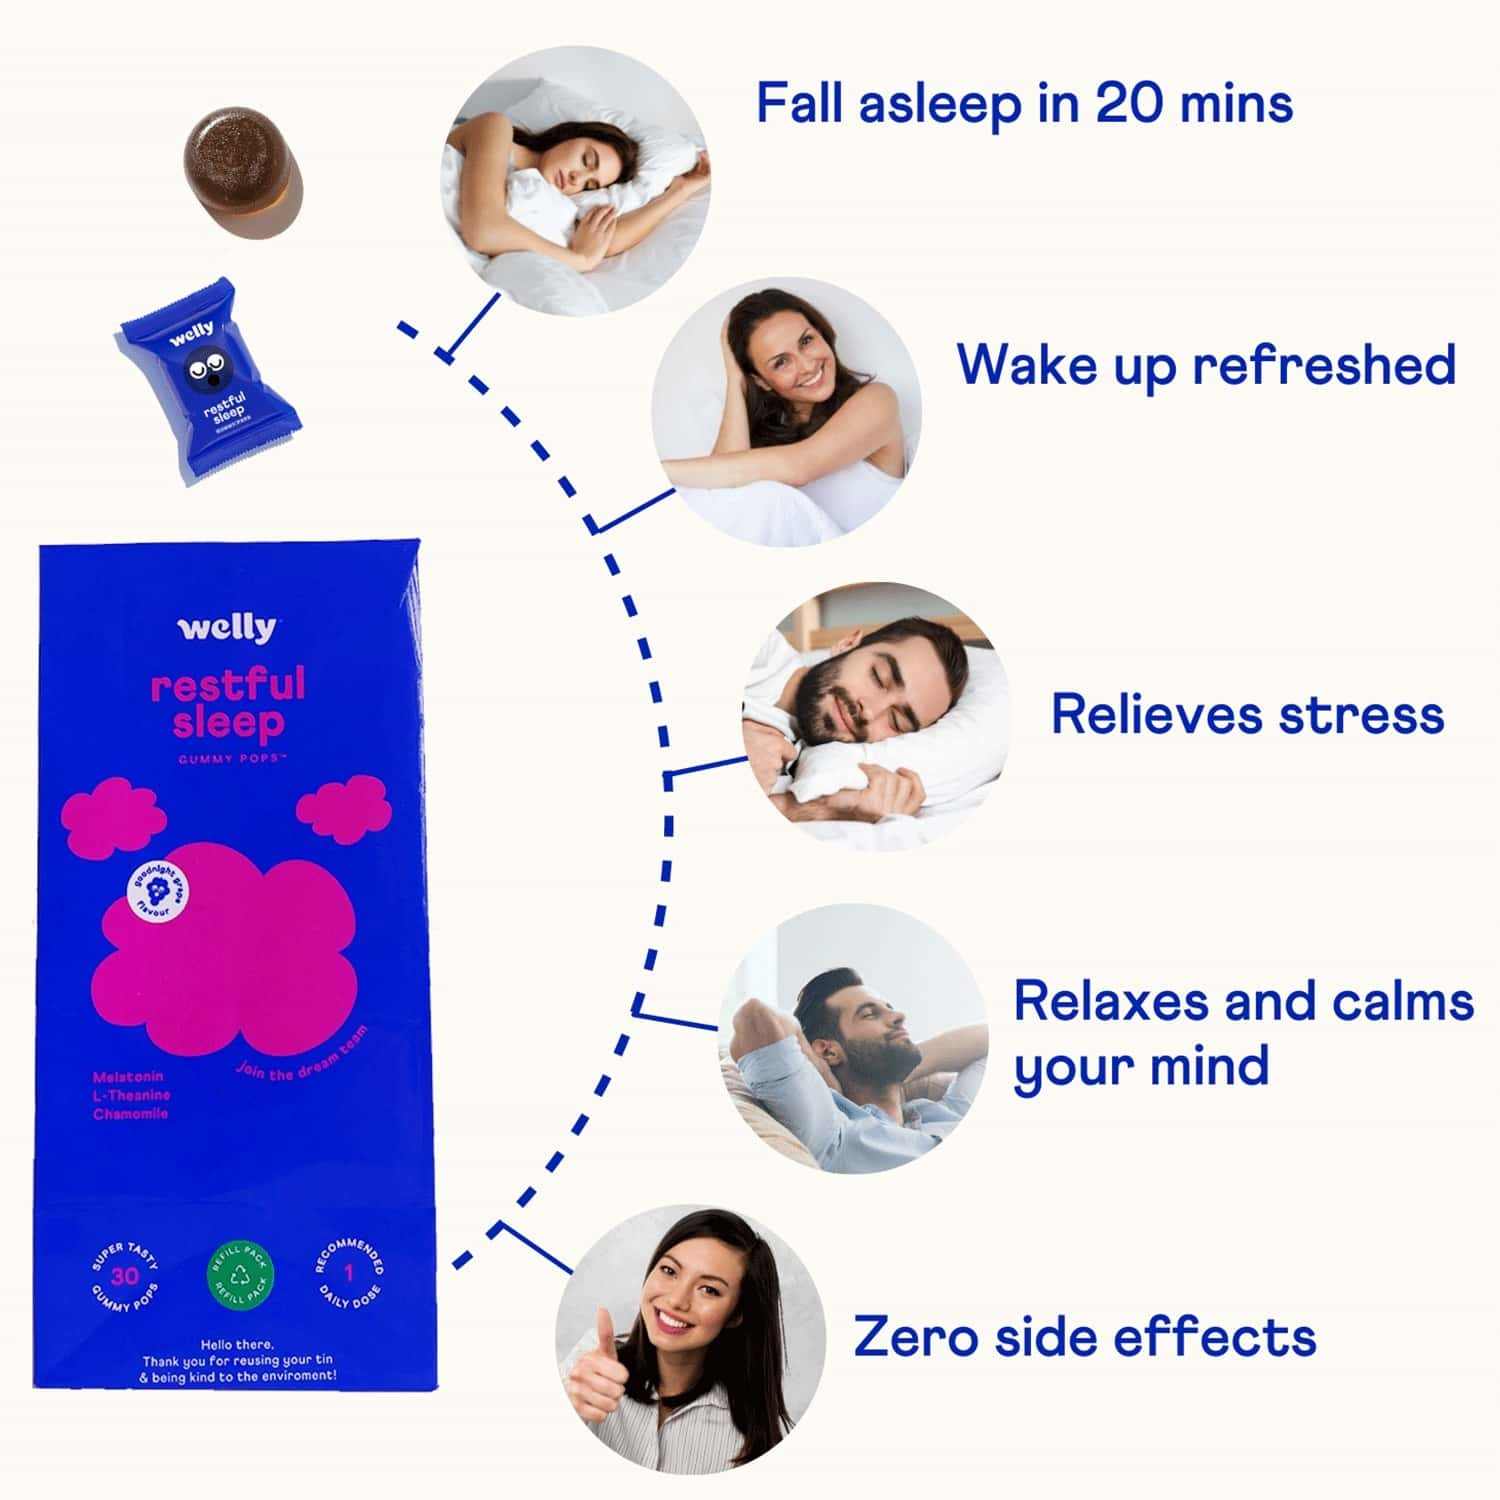 Welly Restful Sleep Vitamin Gummy Pops|environment Friendly Refill-pack 0f 2x30